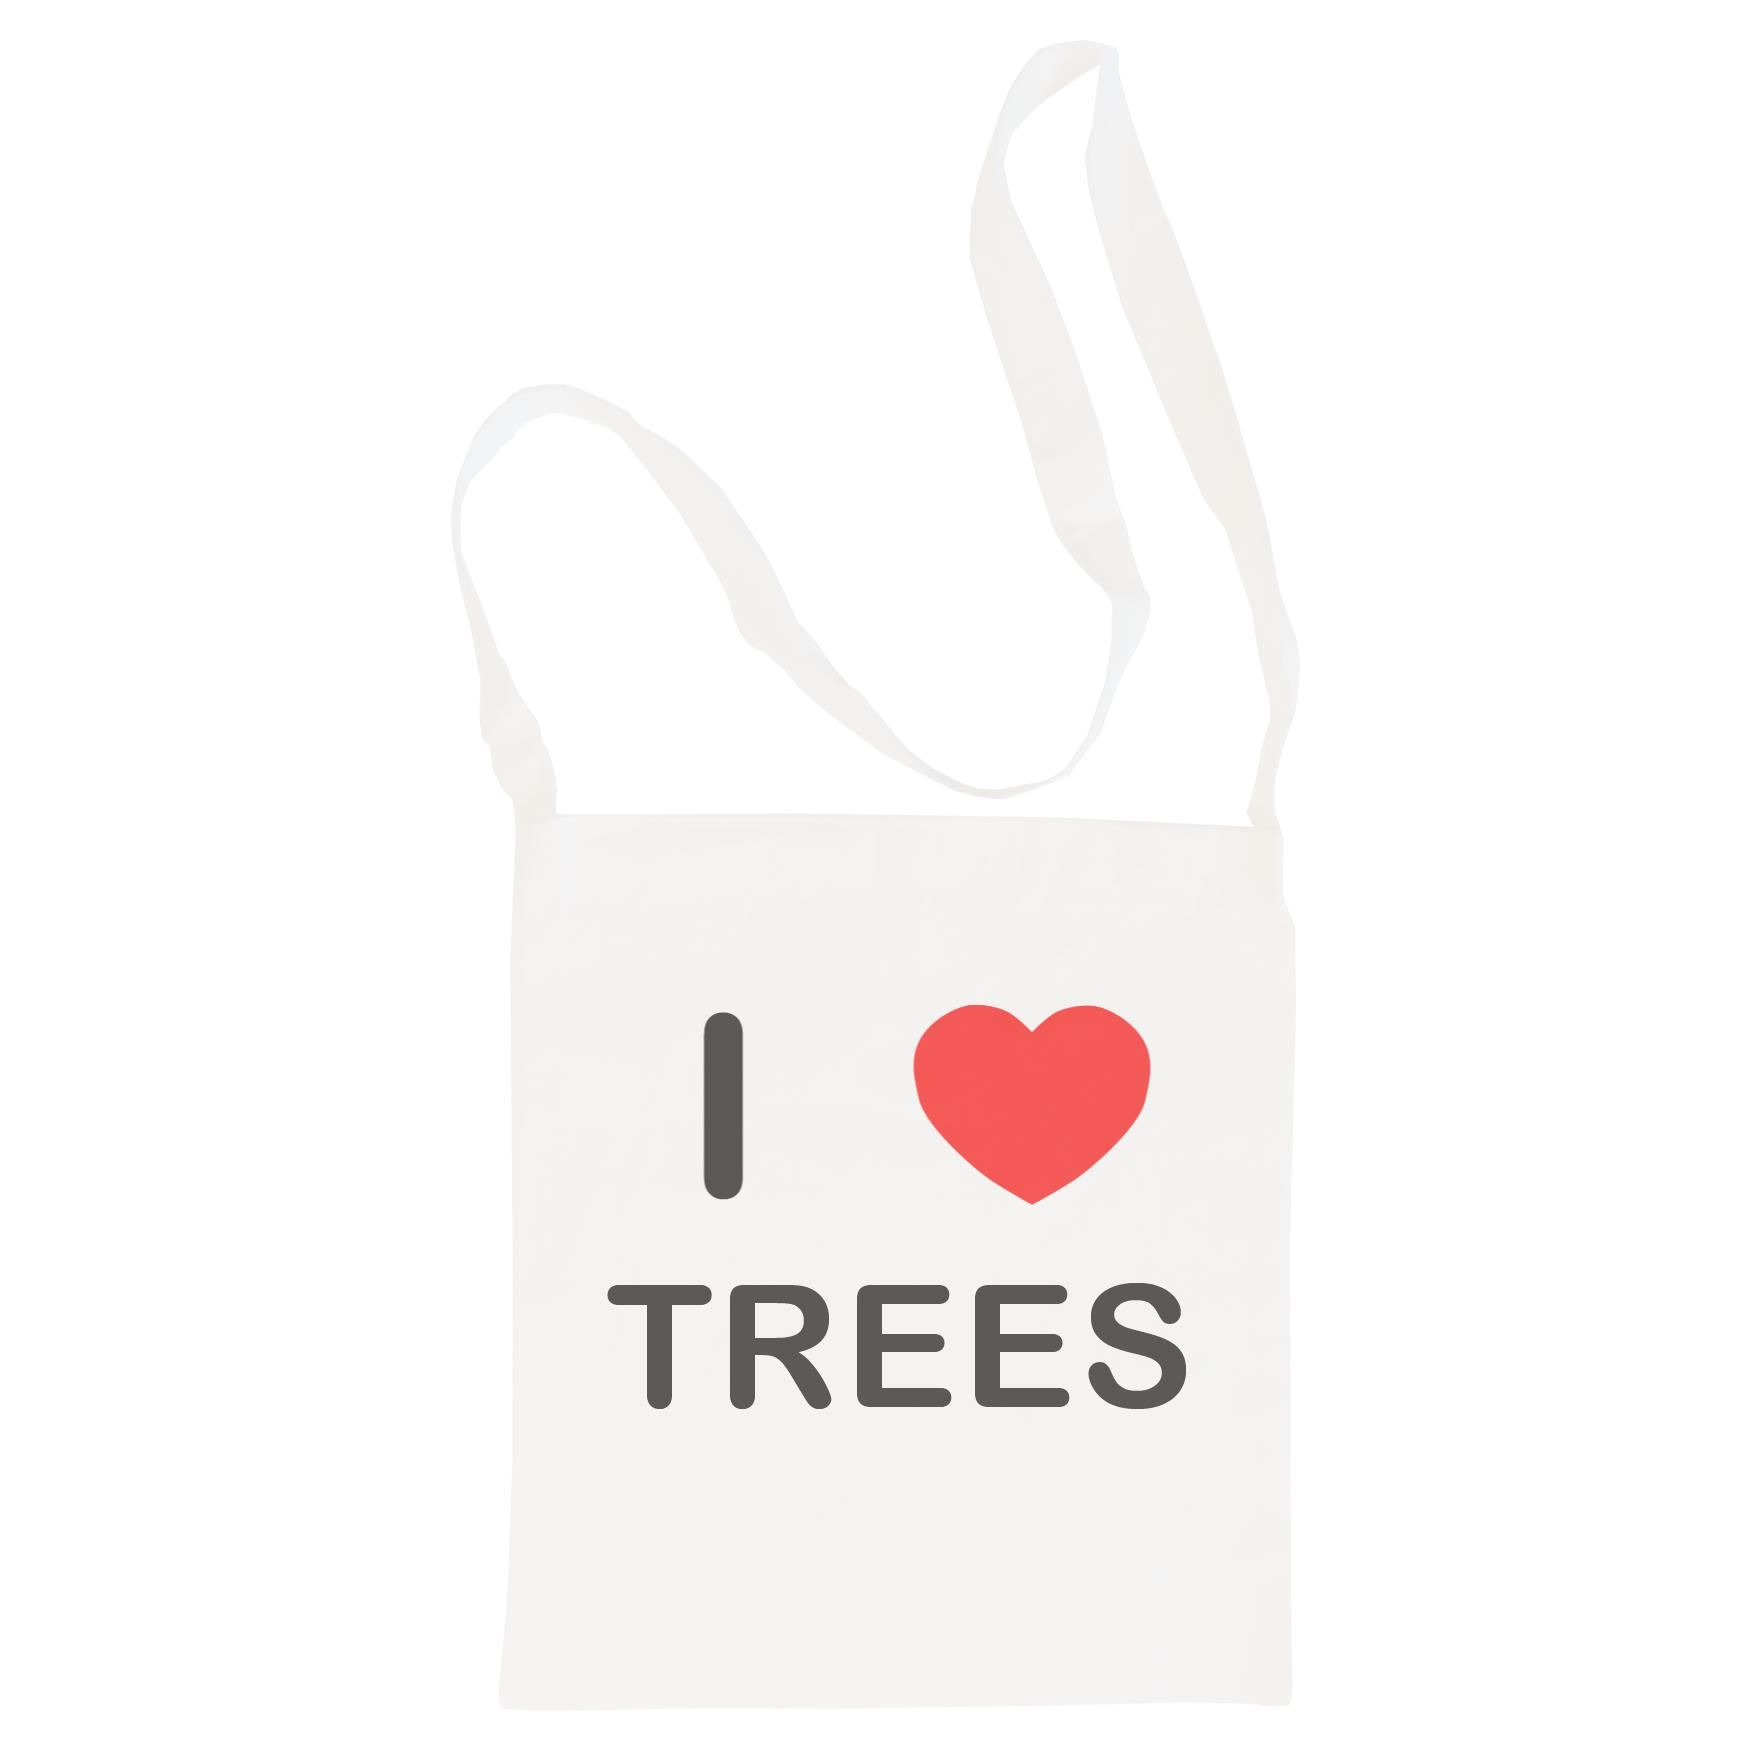 I Love Trees - Cotton Bag | Size choice Tote, Shopper or Sling